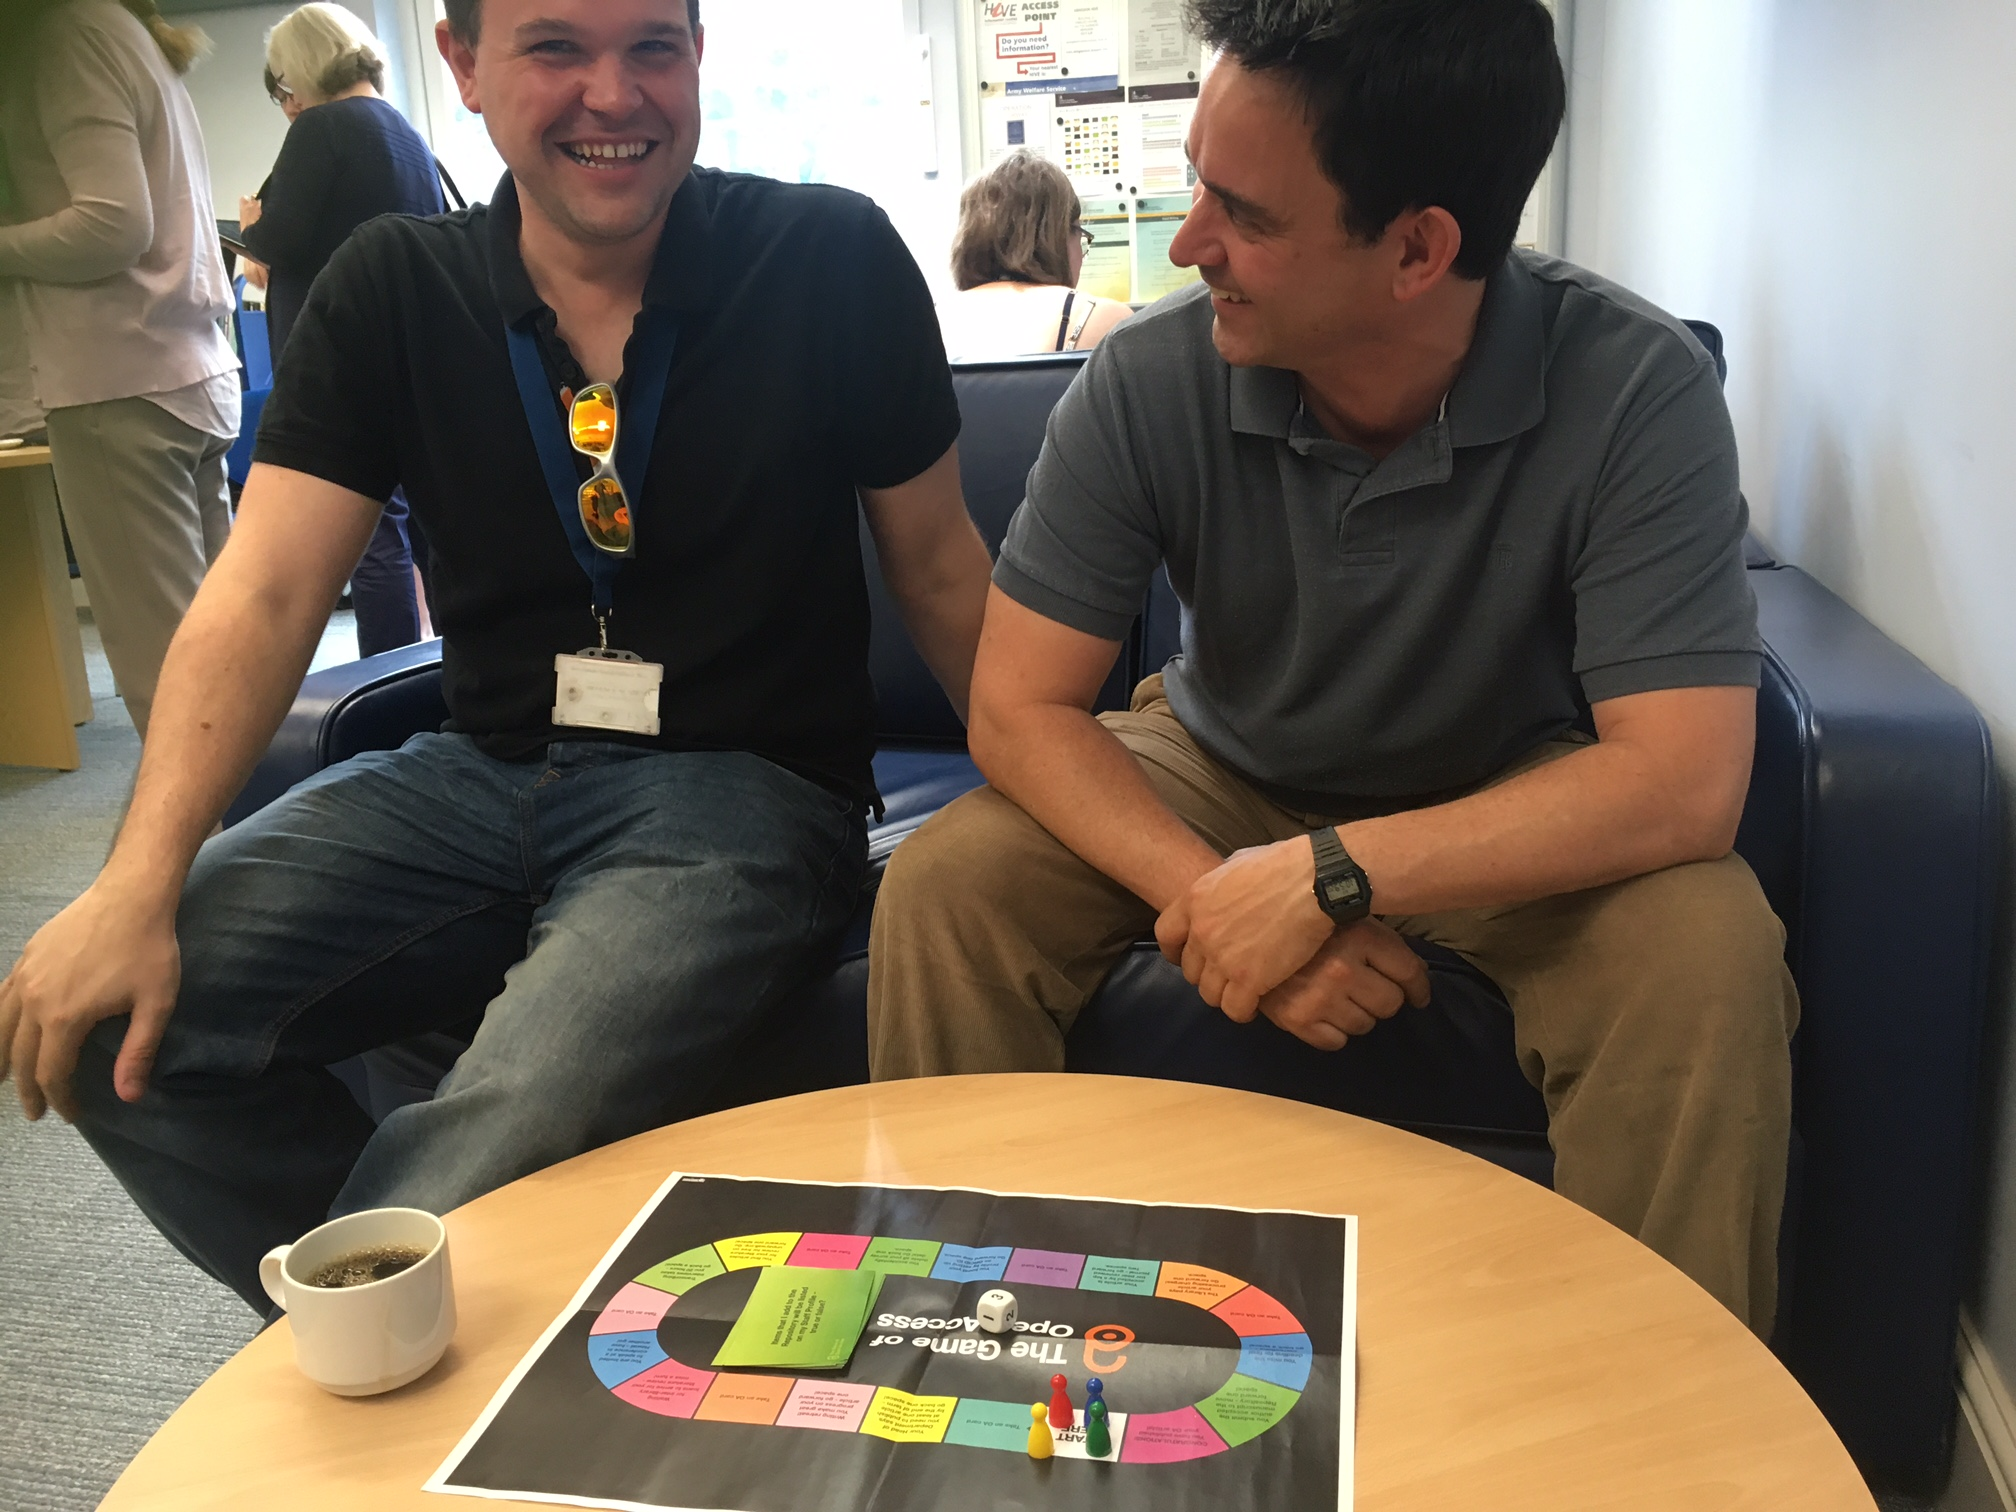 Researchers playing the Game of Open Access at our coffee morning